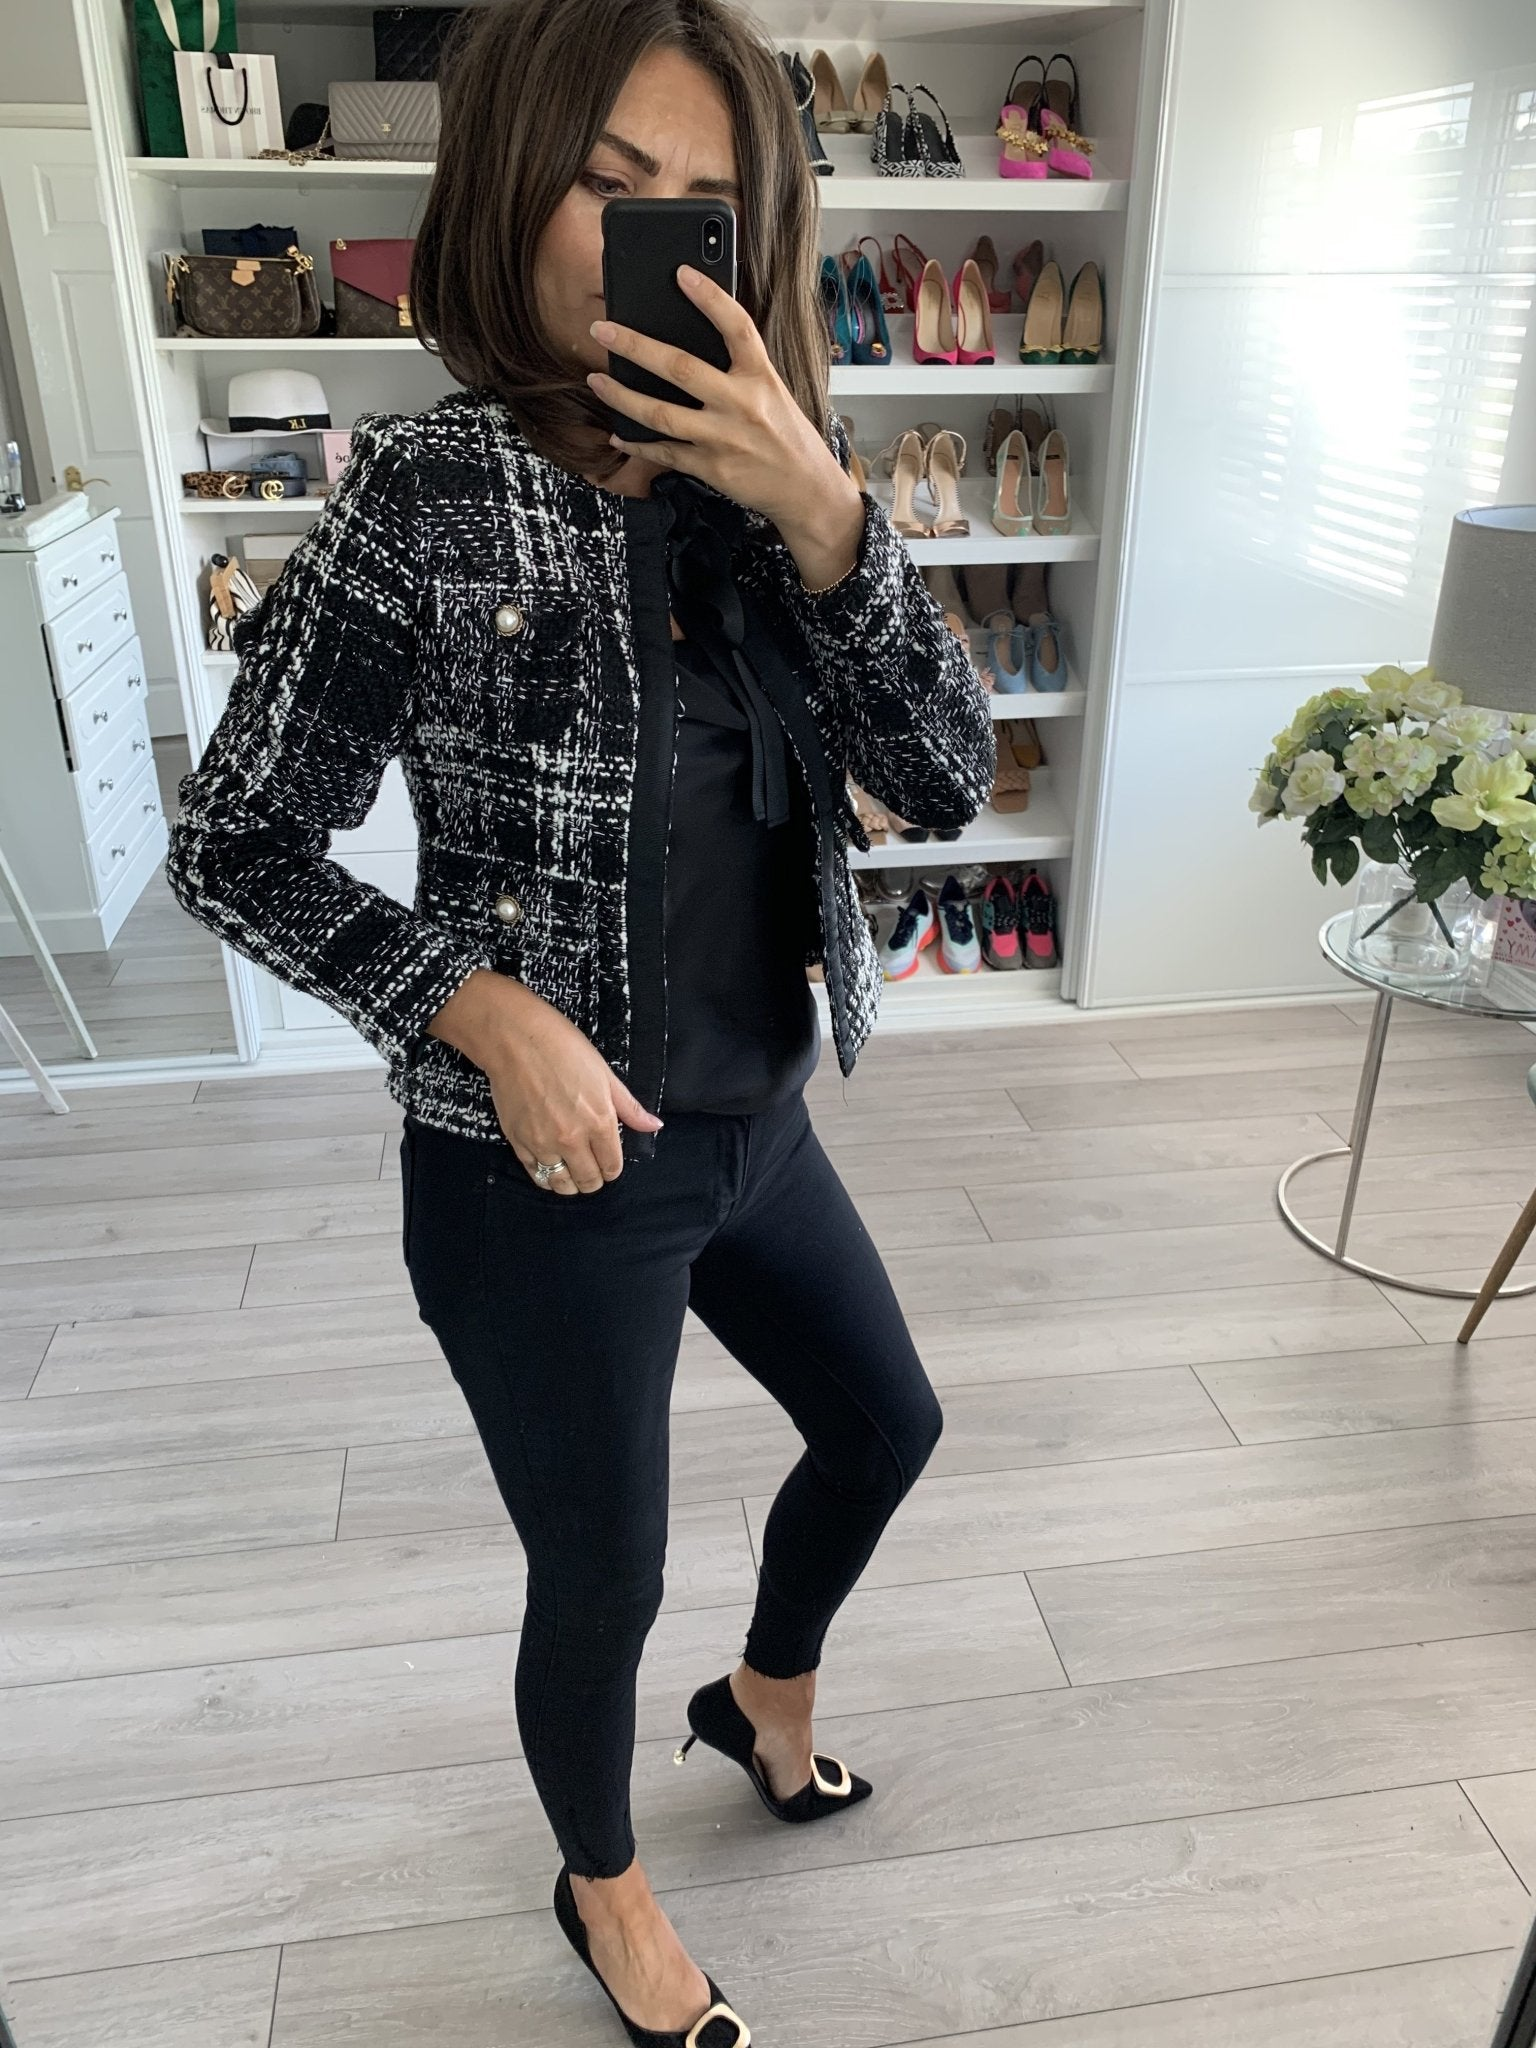 Arabella Black Tweed Jacket - The Walk in Wardrobe